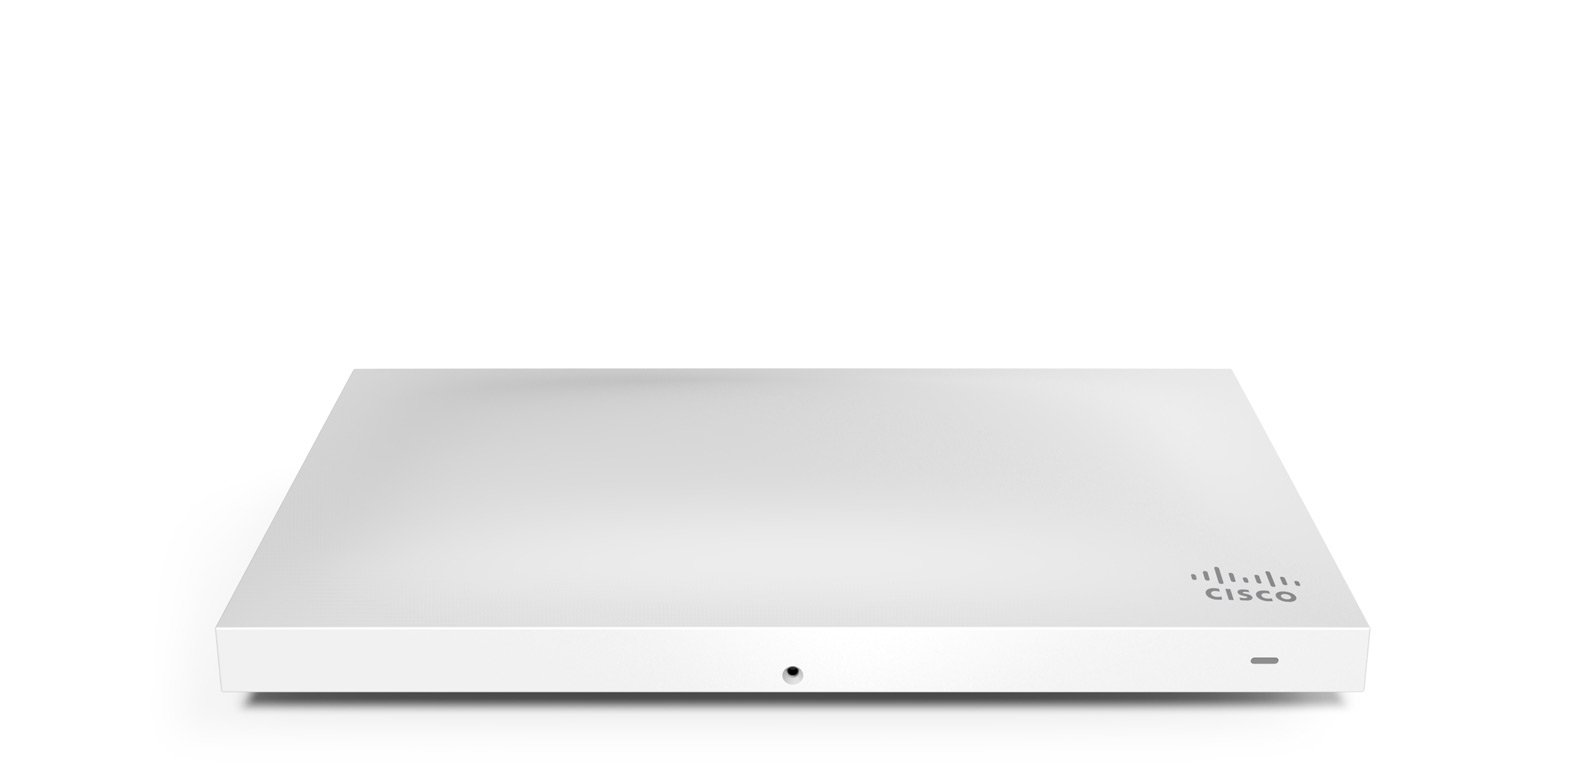 Cisco Meraki MR42 Wireless Access Point (3x3 MIMO, 2.4GHz and 5GHz, Wave2, 802.11ac, POE)